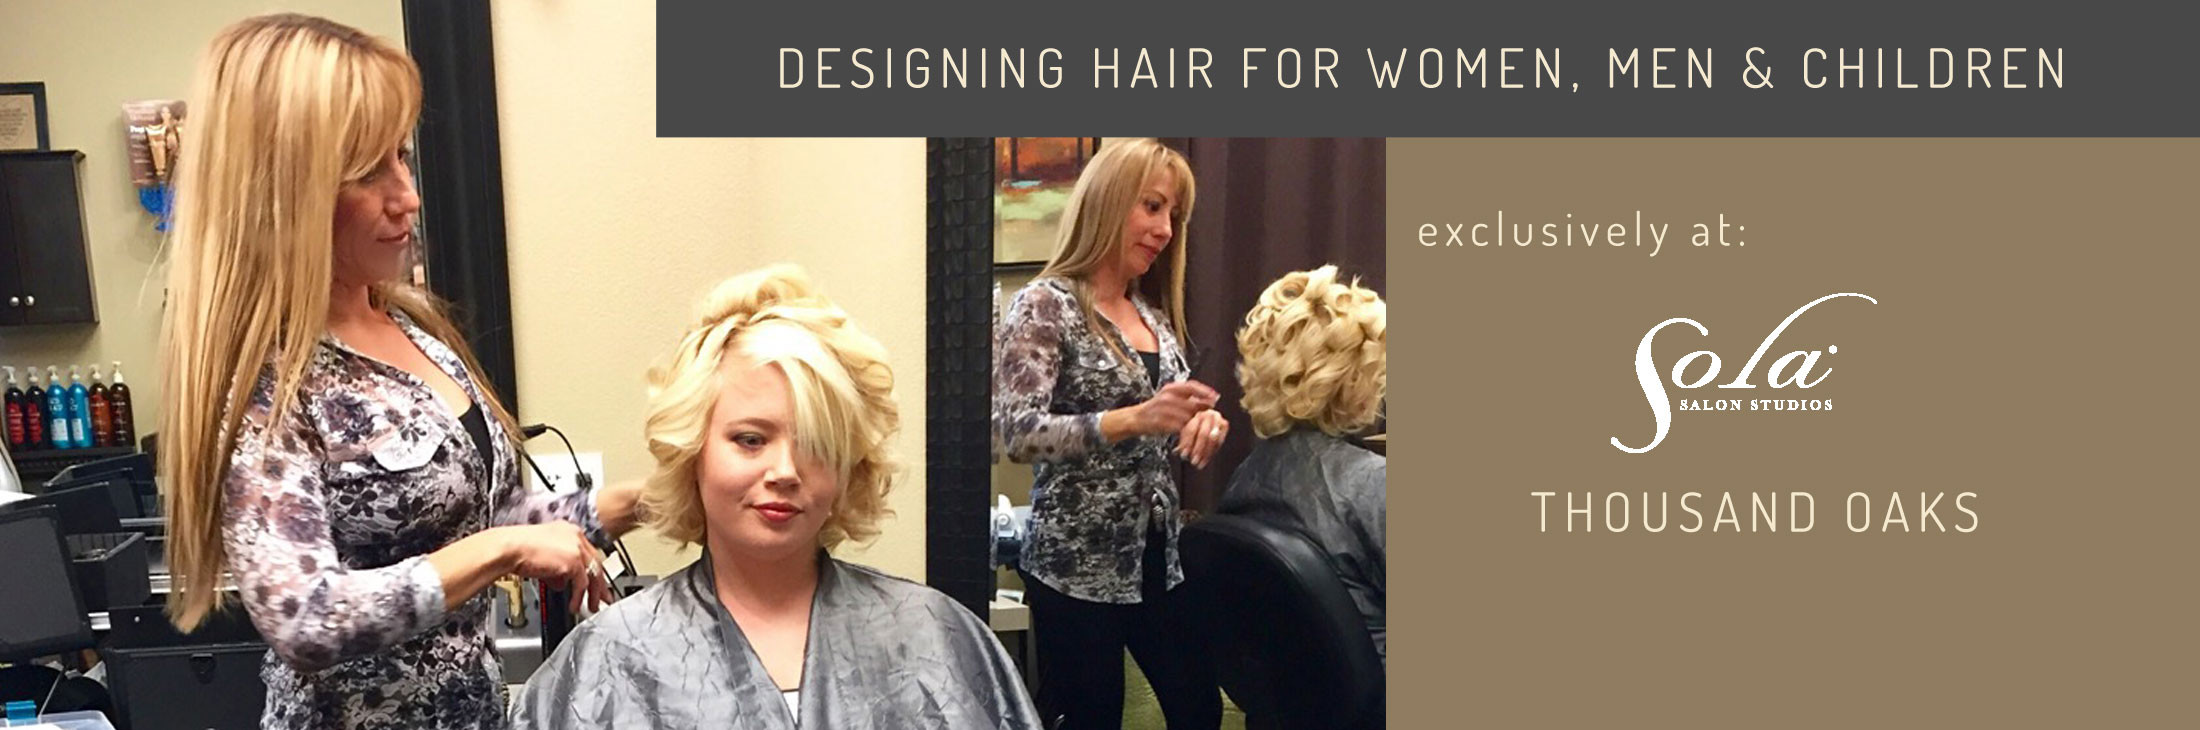 Hair Salons Thousand Oaks Hair Images Superbowlodds